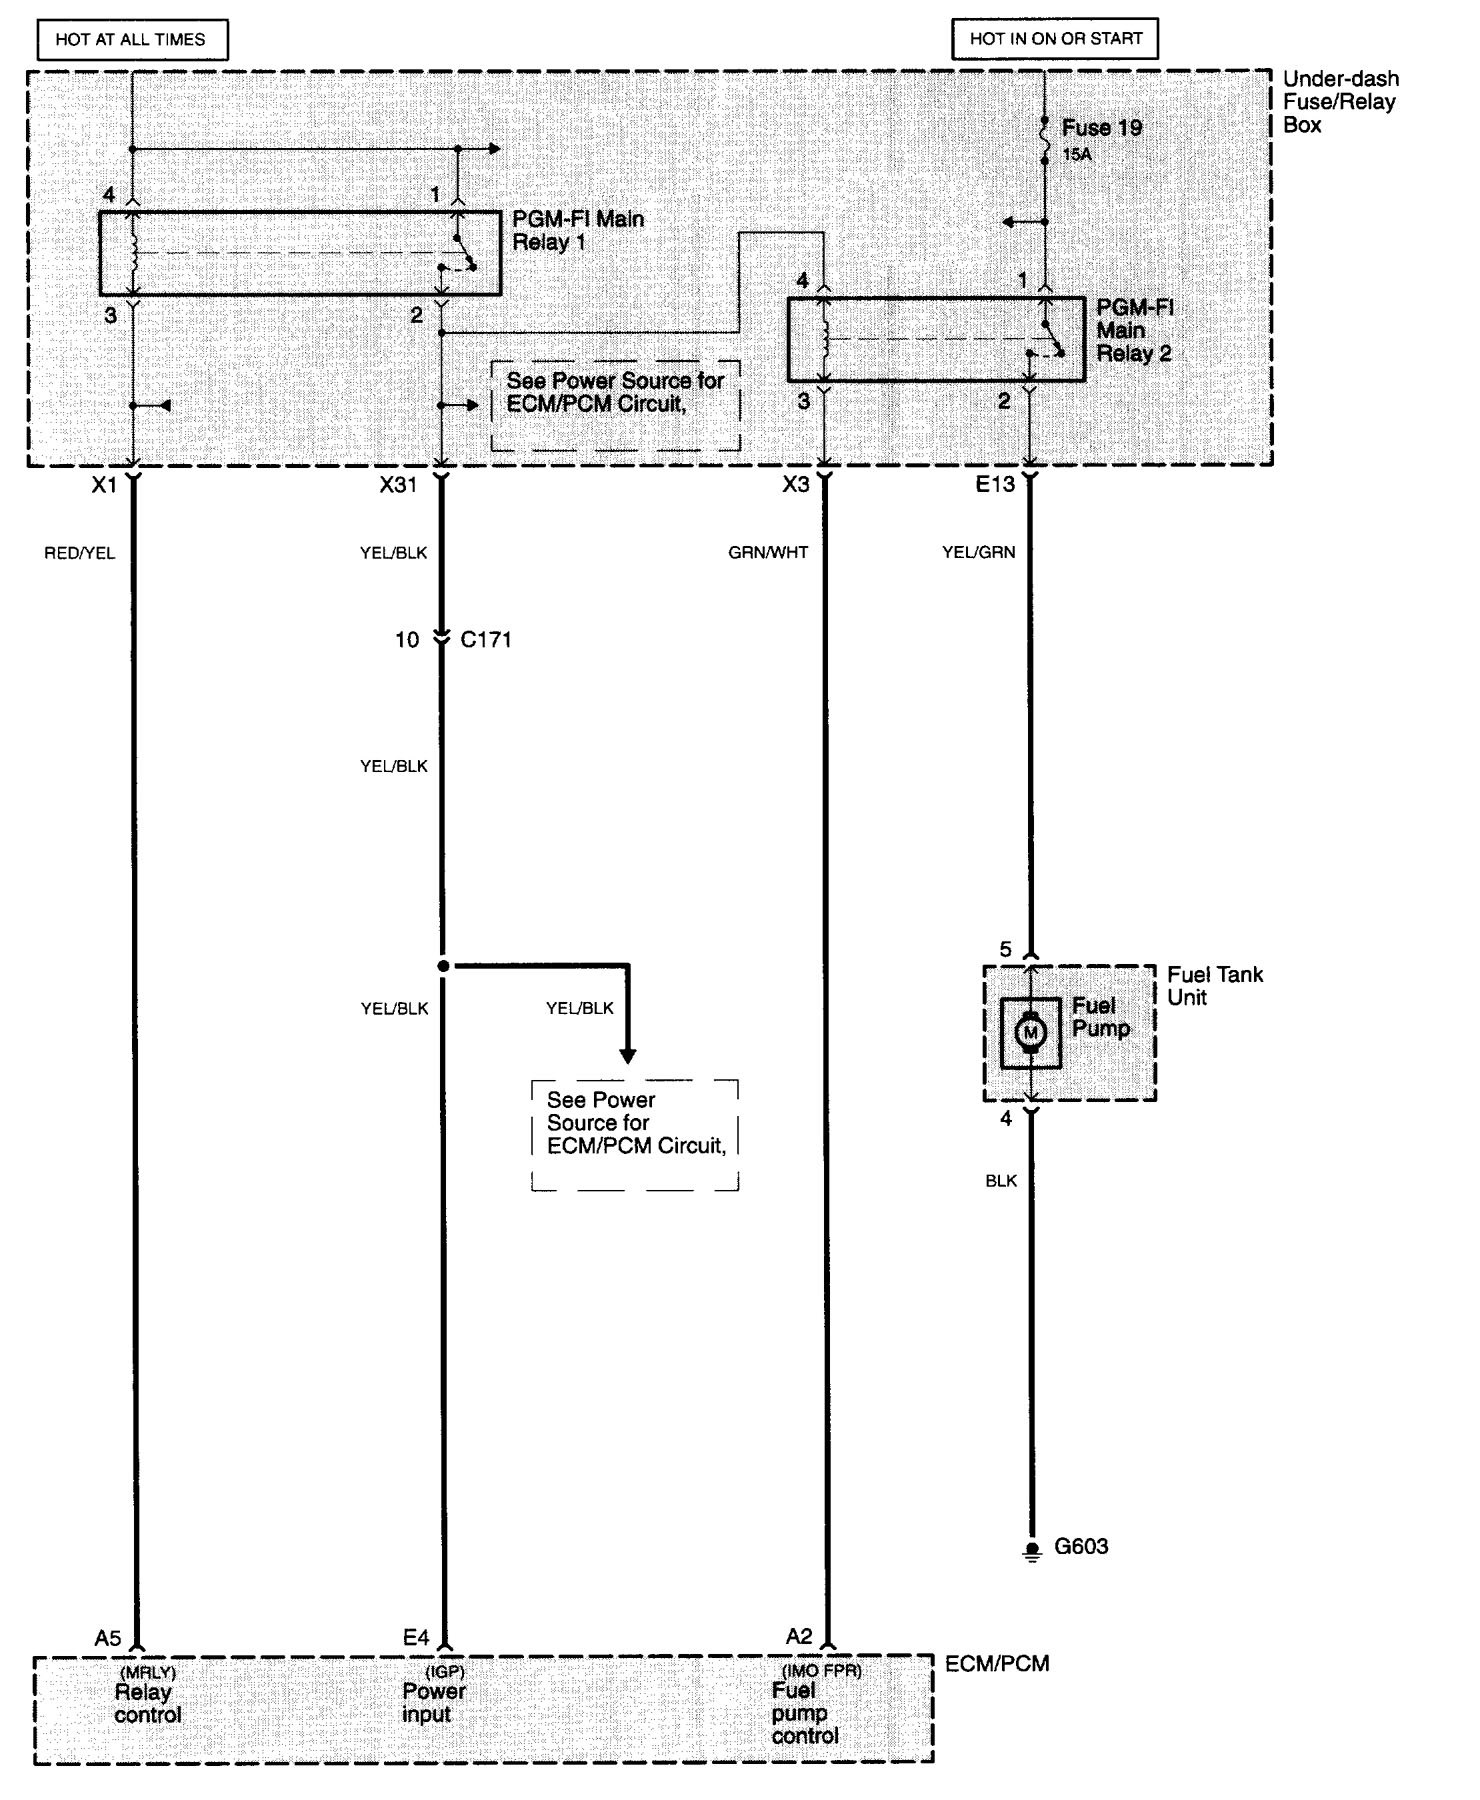 Acura Tl 2007 Wiring Diagrams Fuel Control Carknowledge Diagram For Tank Part 14